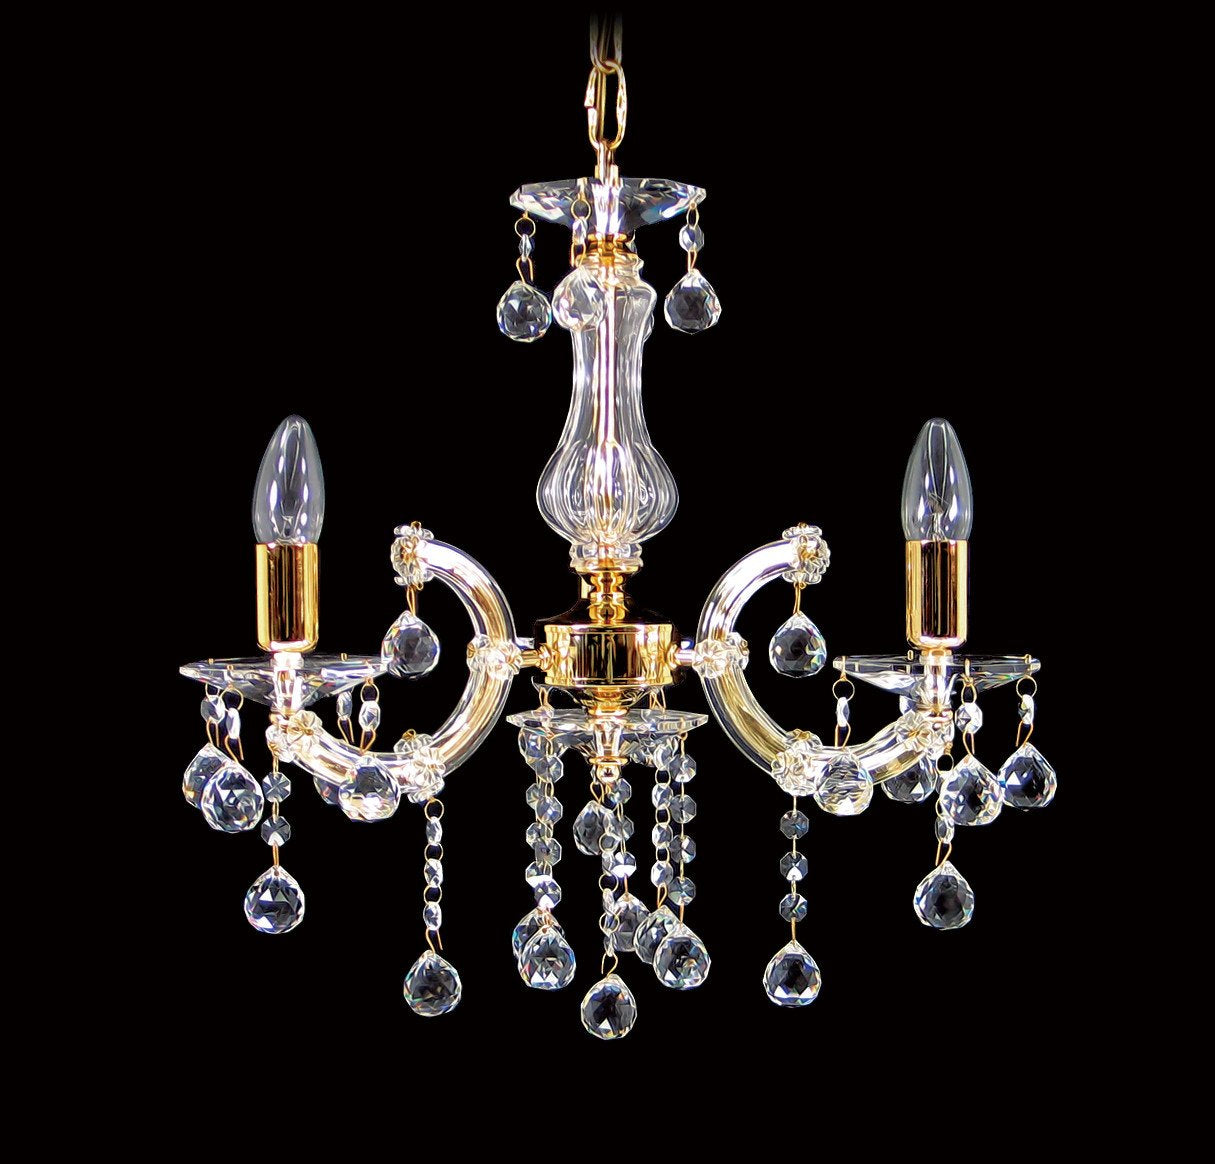 6610 crystal pendant light 18 3 light gold asfour crystal 6610 crystal pendant light 18 3 light gold asfour crystal chandelier 6610 3l 1036 30mm aloadofball Gallery